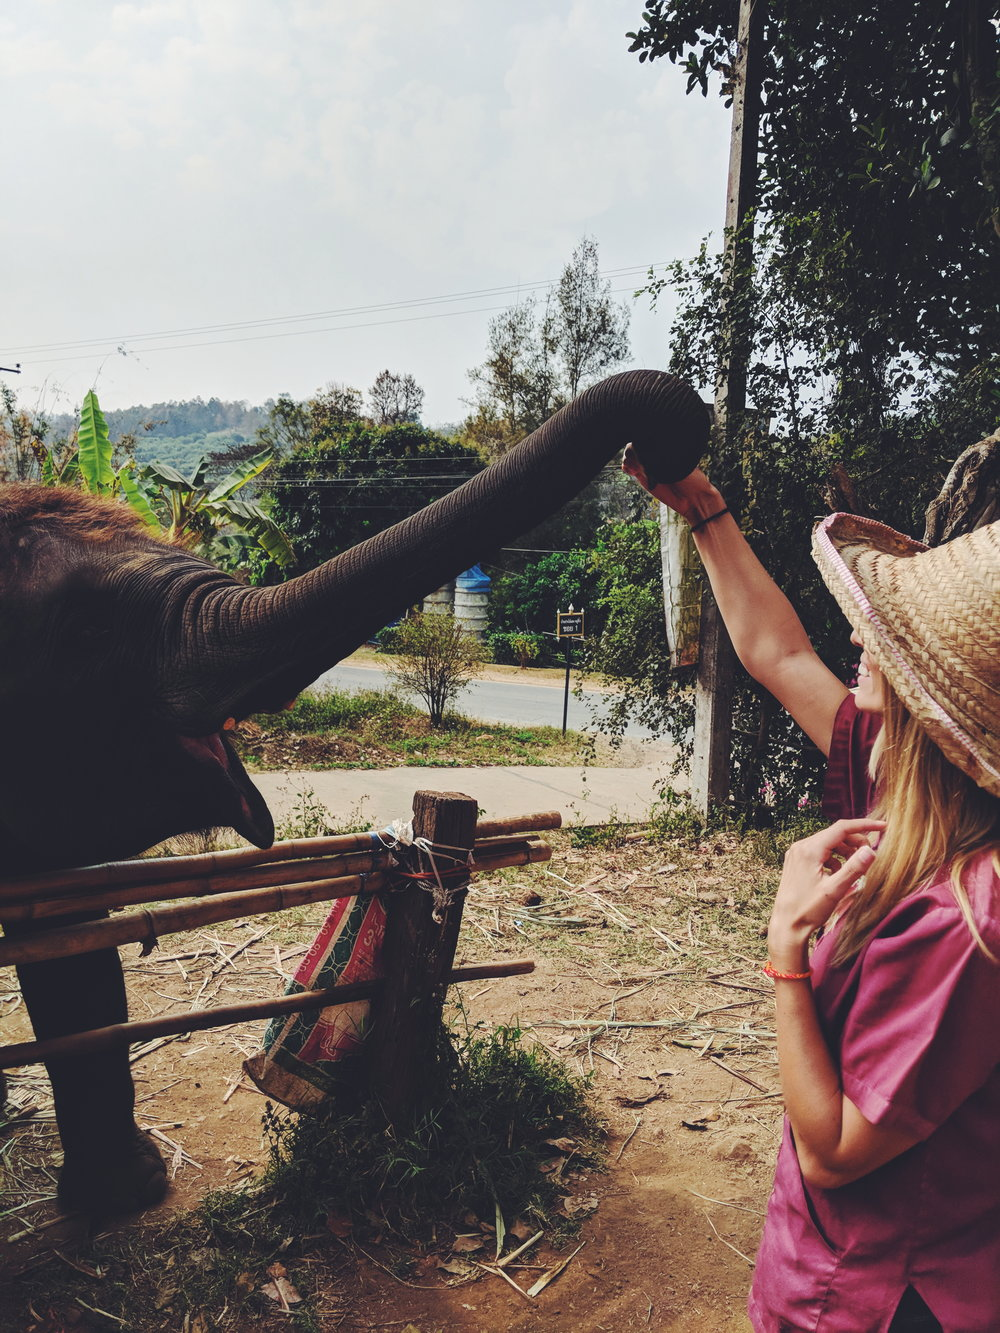 Feeding baby elephants at Elephant Rescue Park, Chiang Mai